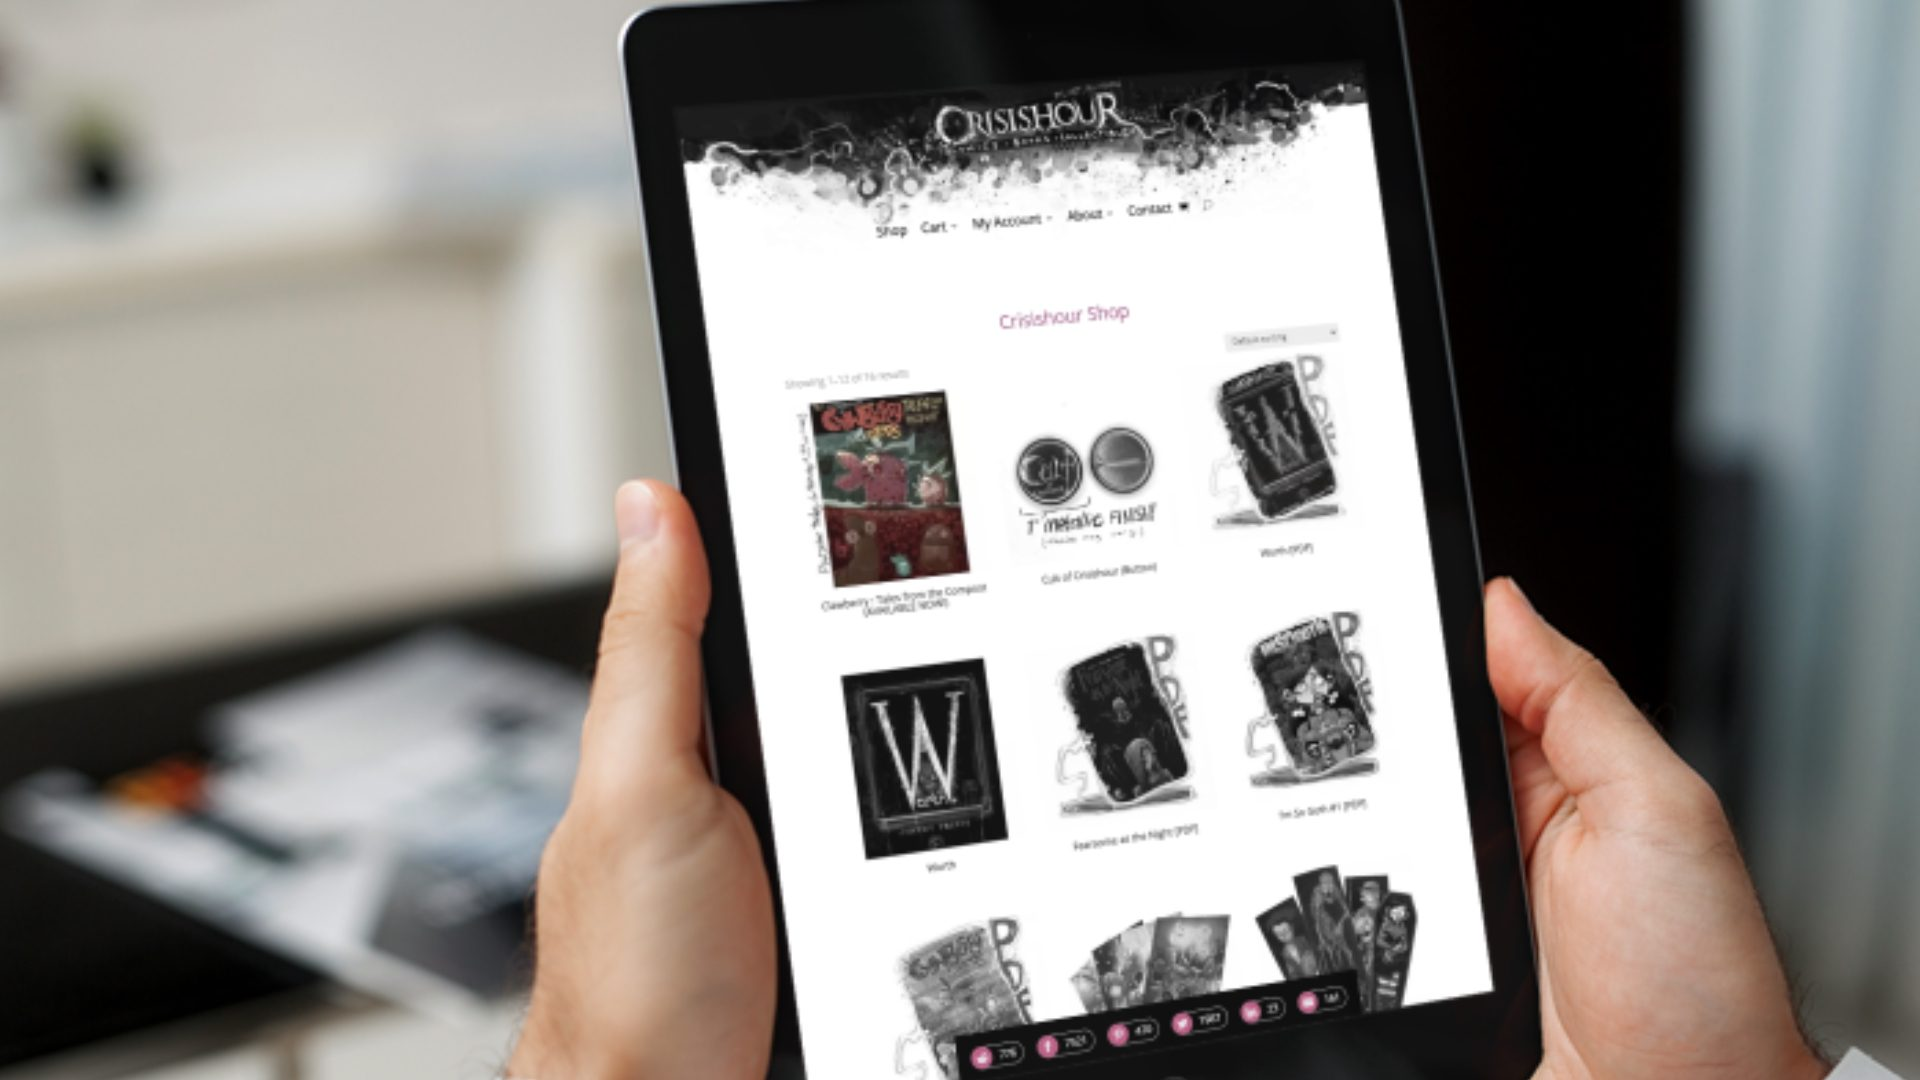 Crisishour - ecommerce website design (1)